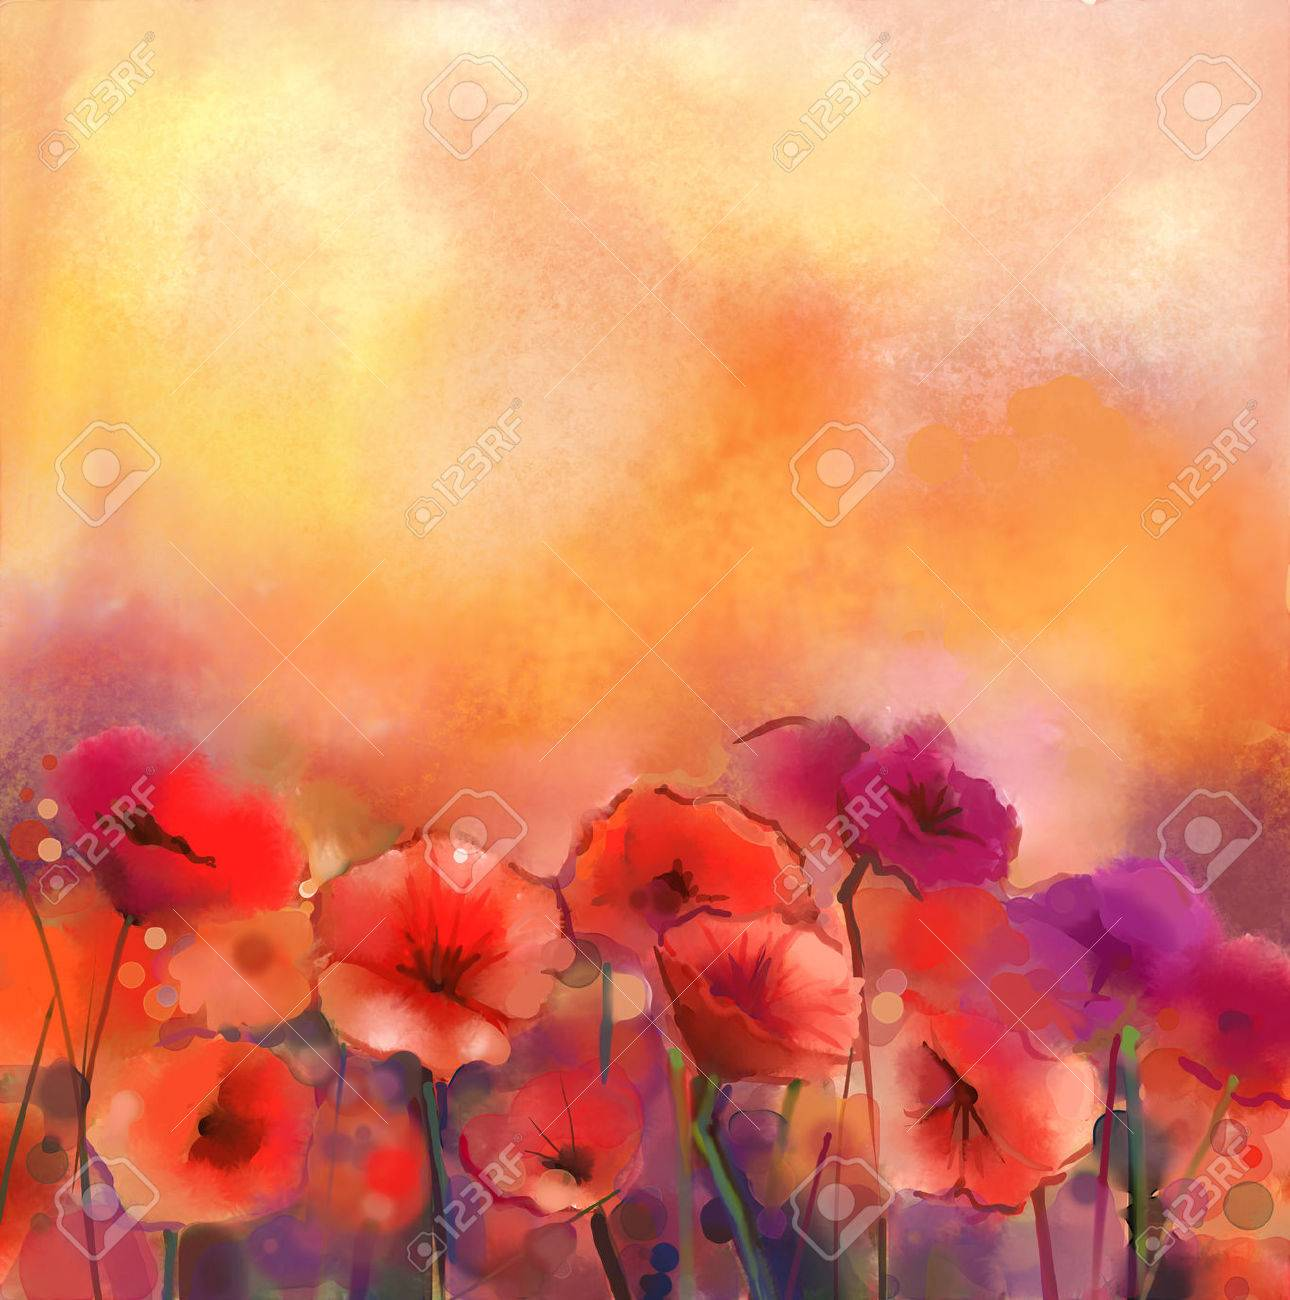 Watercolor red poppy flowers painting. Flower paint in soft color and blur  style, Yellow